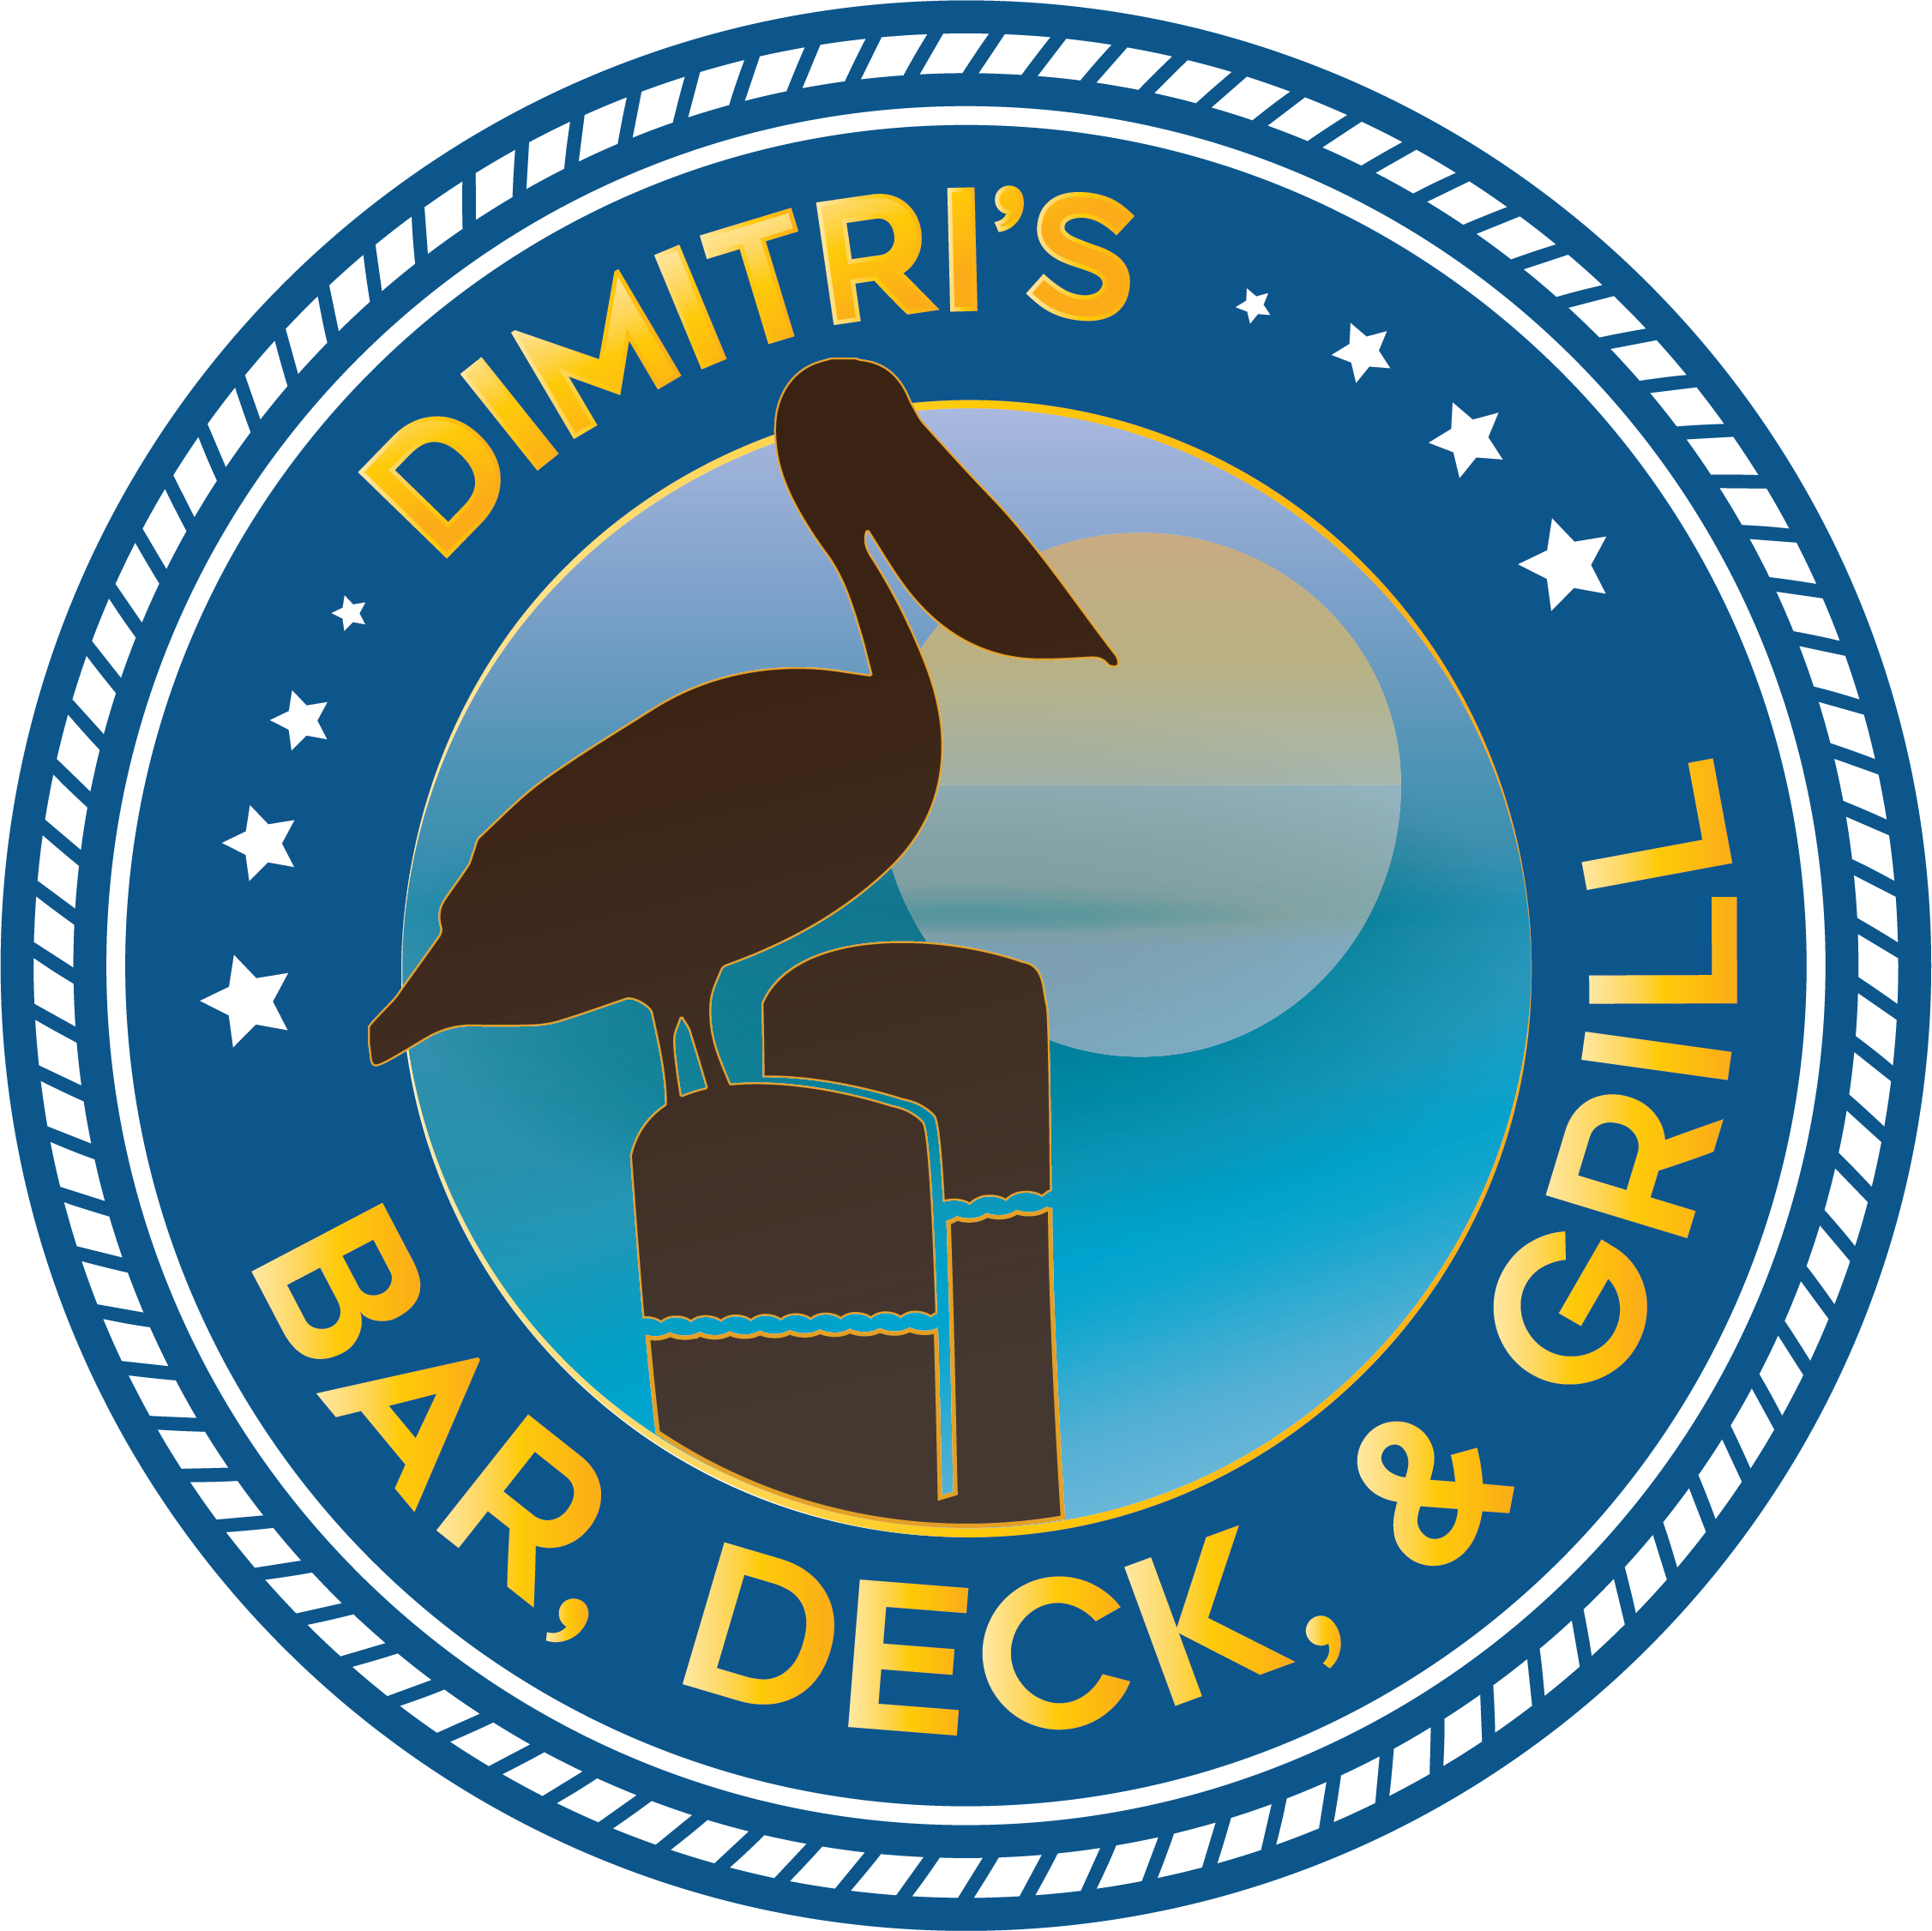 Dimitris Bar Deck & Grill